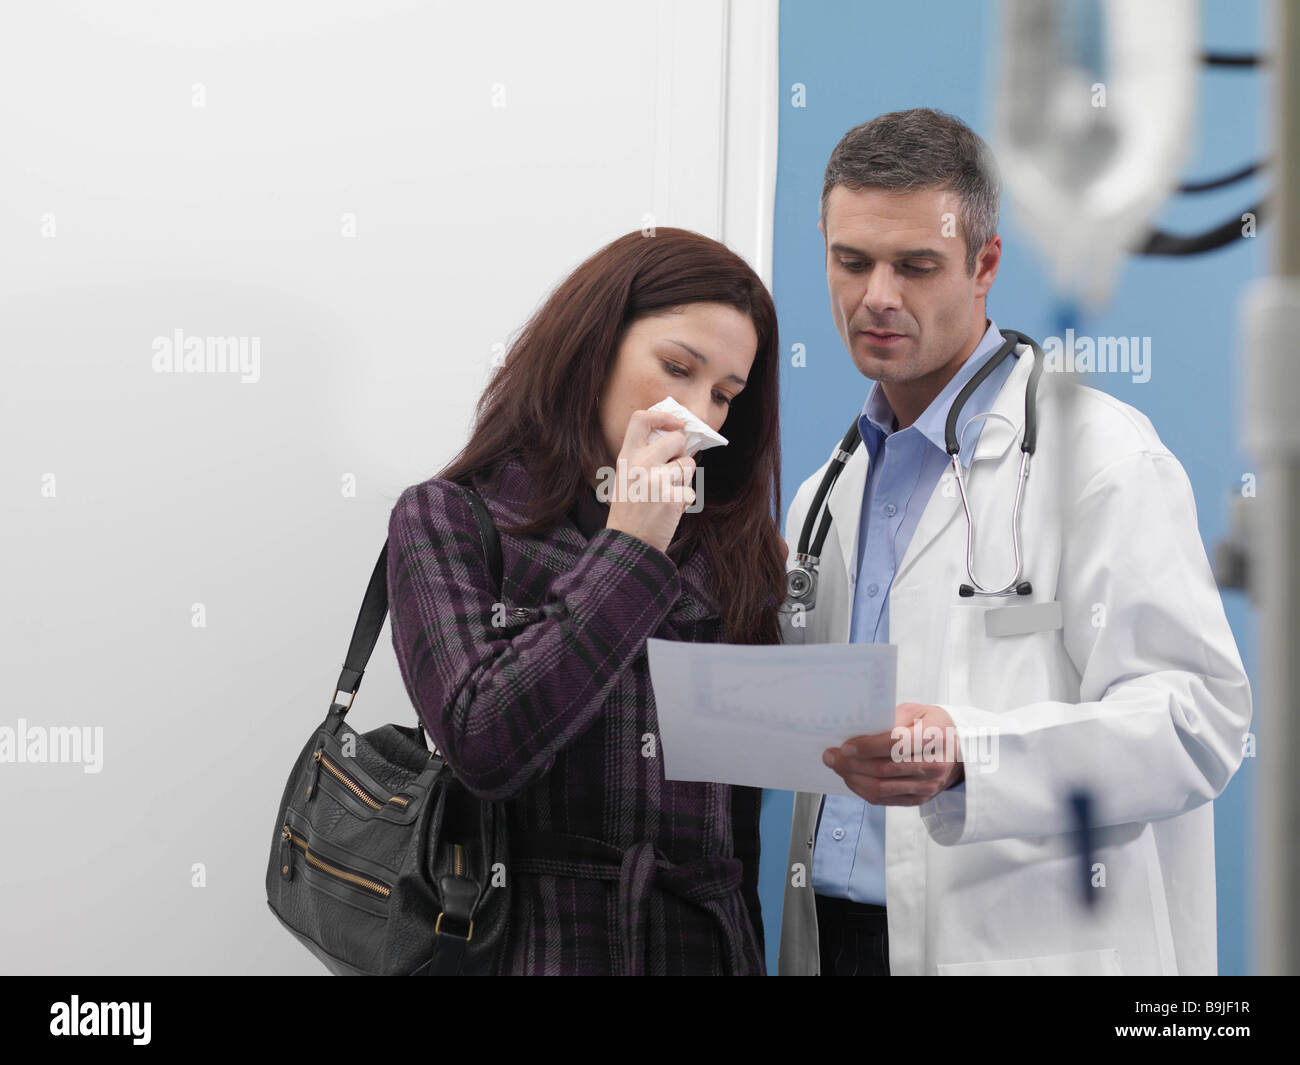 Doctor consoling a relative Stock Photo